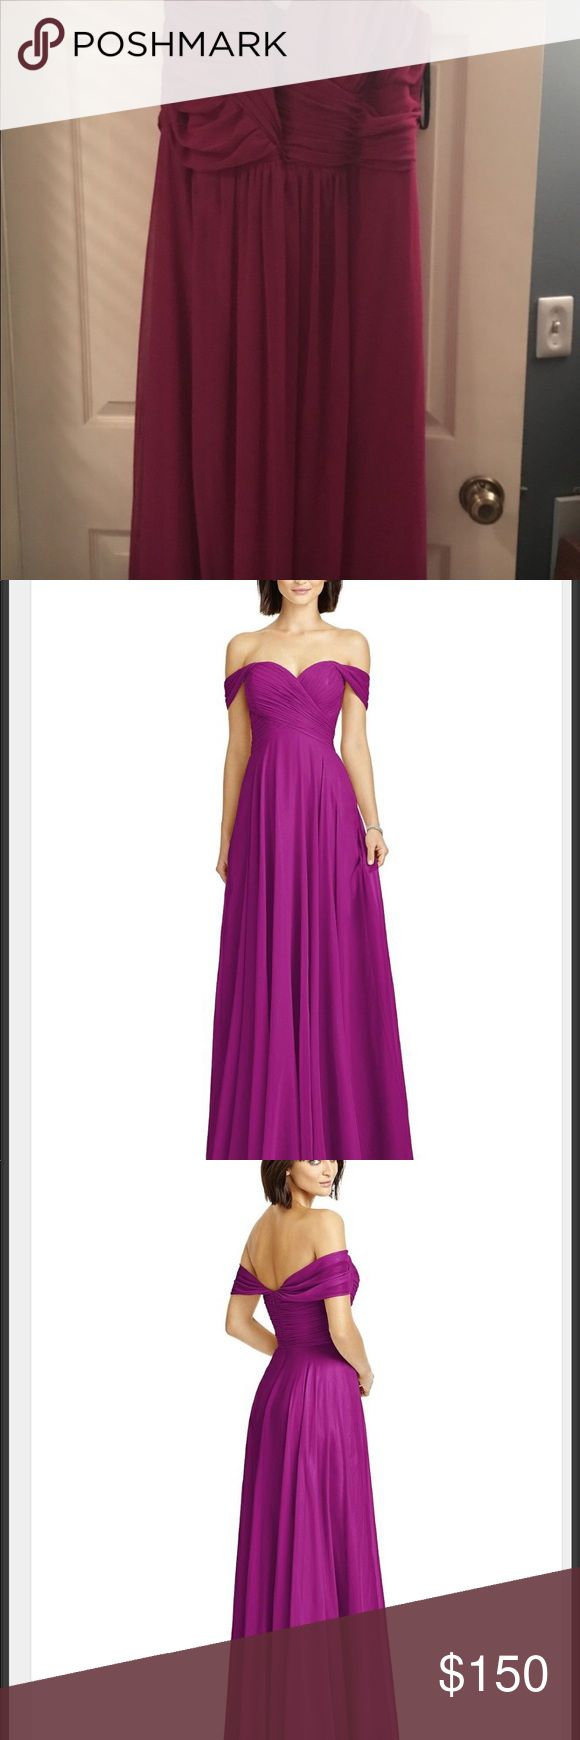 Dessy Collection Style 2970 - Persian Plum Never worn, never altered, tags not removed. Size 22. Dresses Wedding